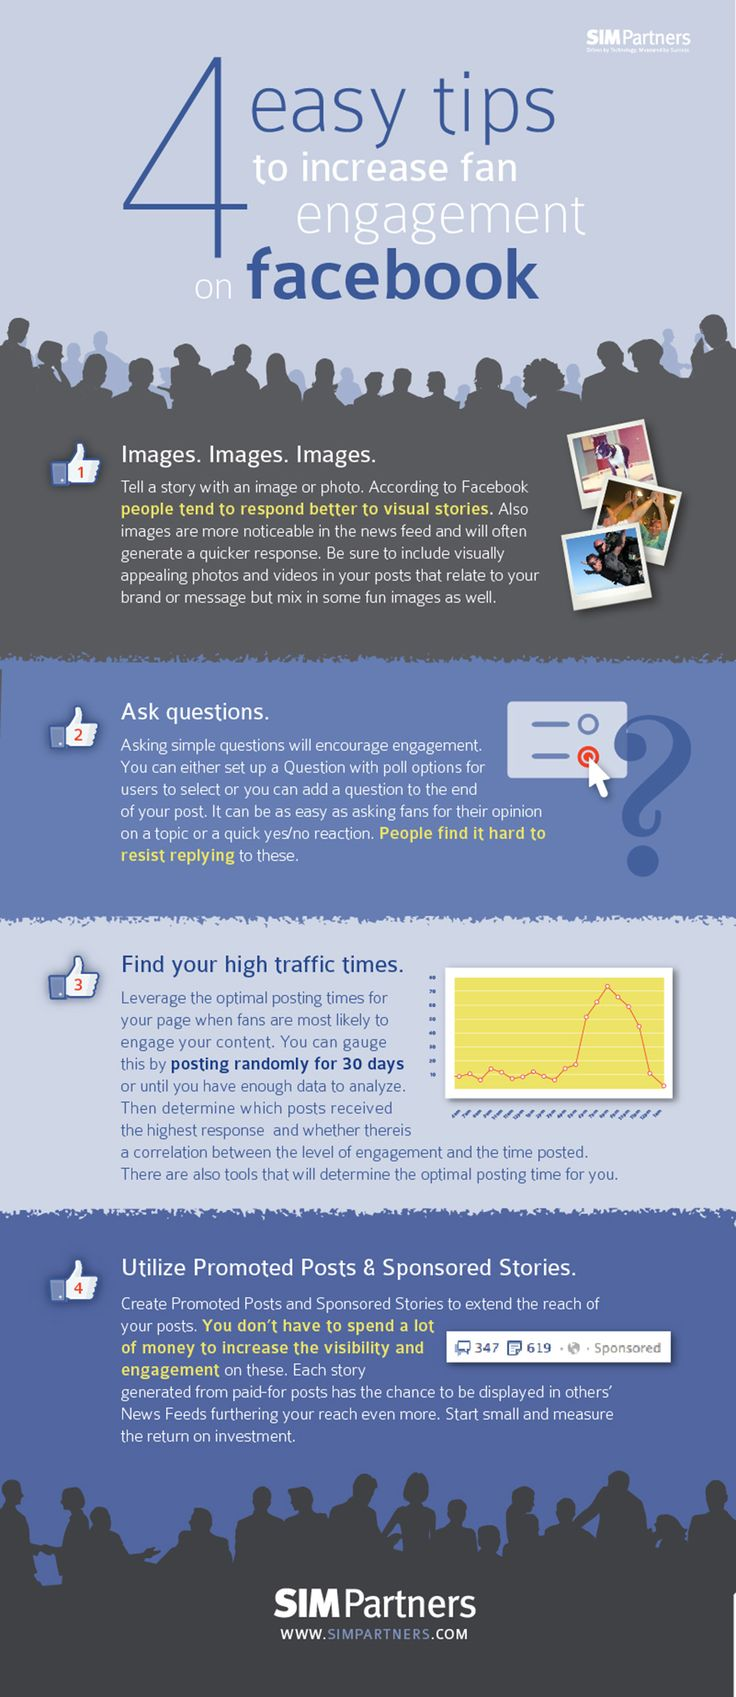 4 Easy Tips to Increase Fan Engagement on #Facebook - #SocialMedia #Infographic